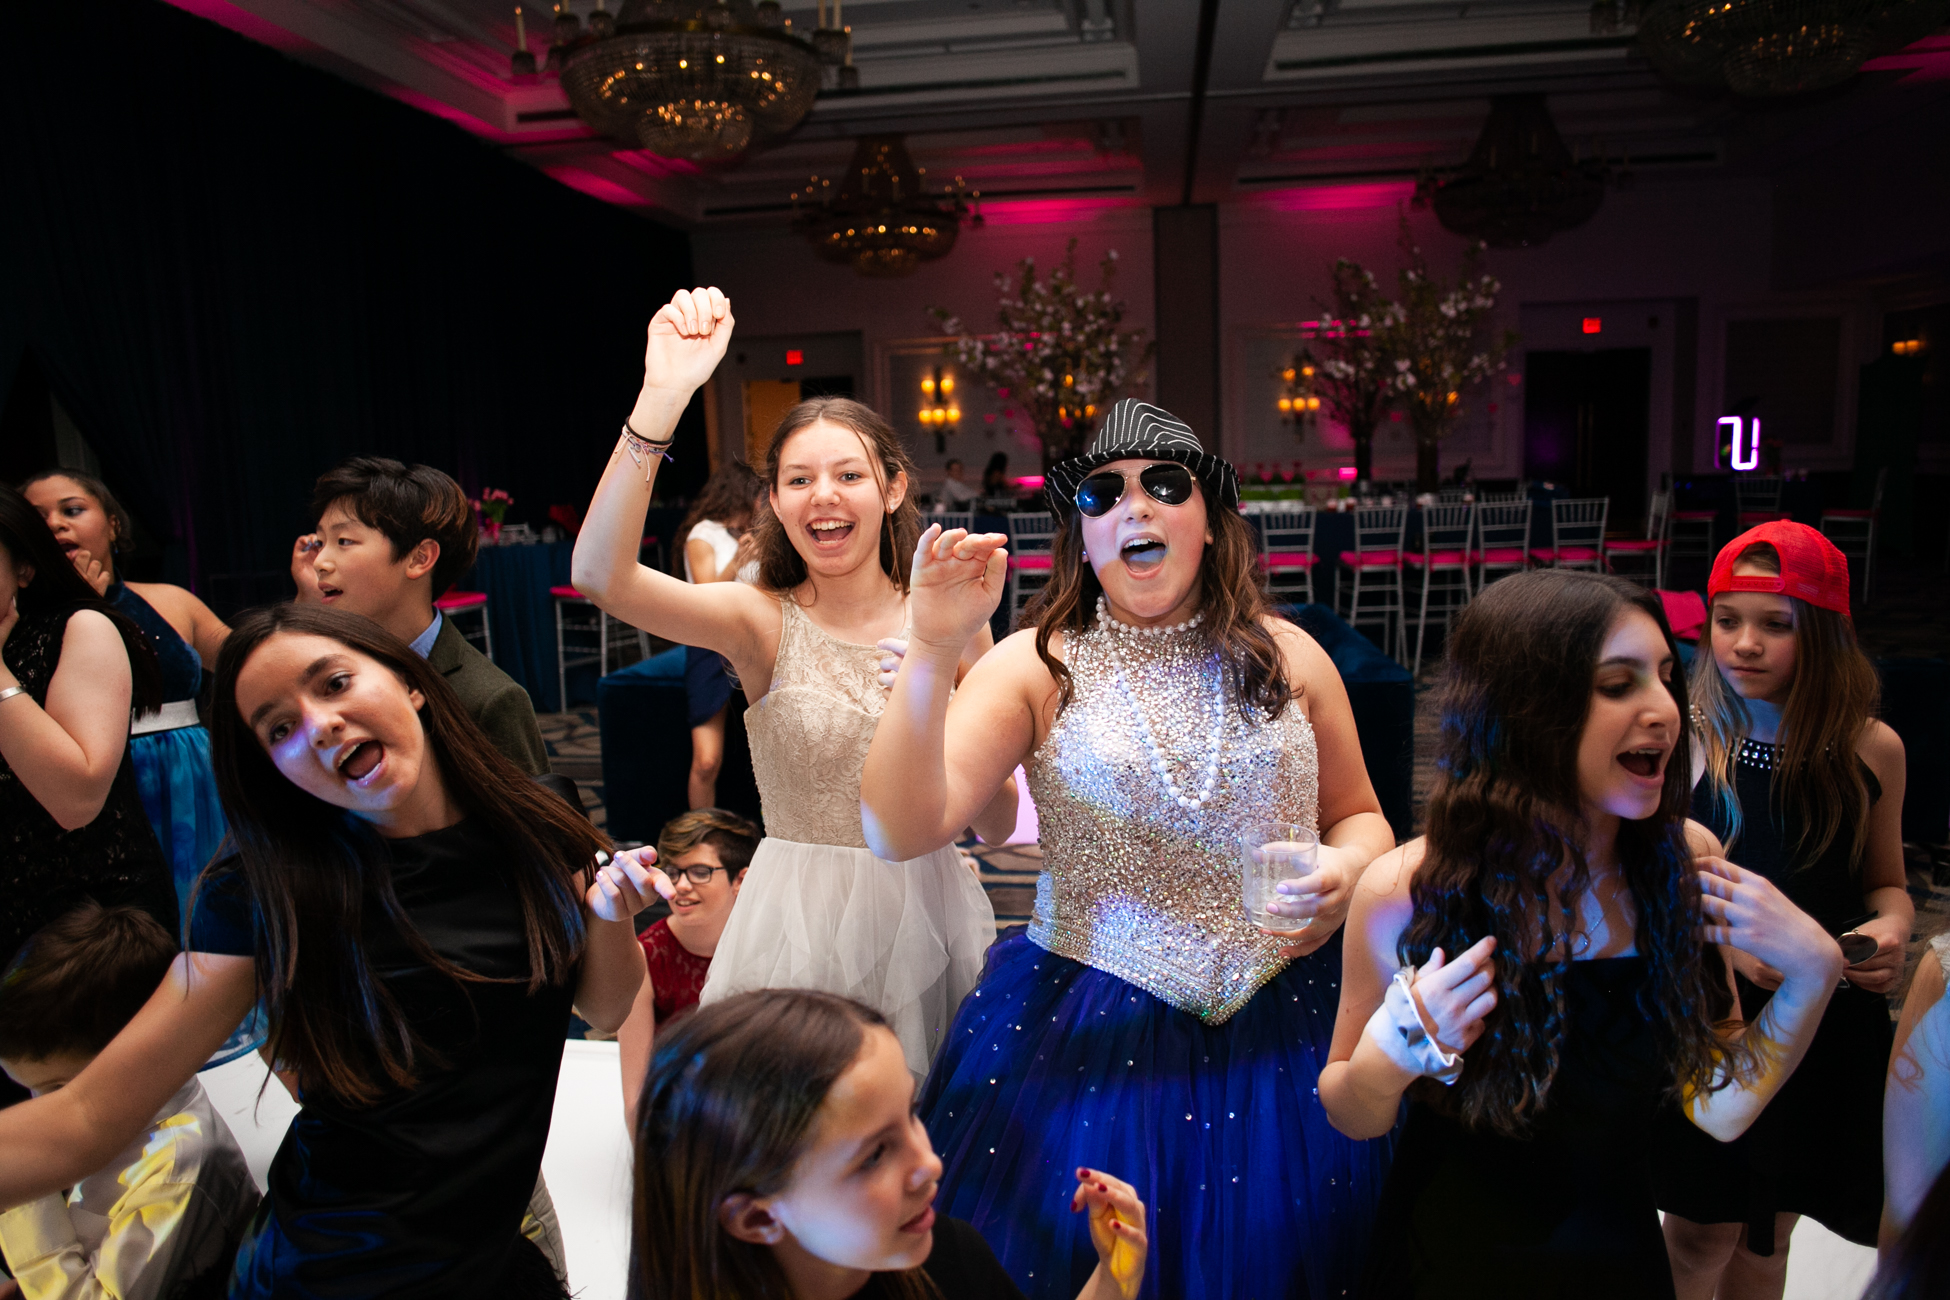 Sydney's Bat Mitzvah at Sheraton Society Hill by Avi Loren Fox LLC - Sneak Peak-85.jpg